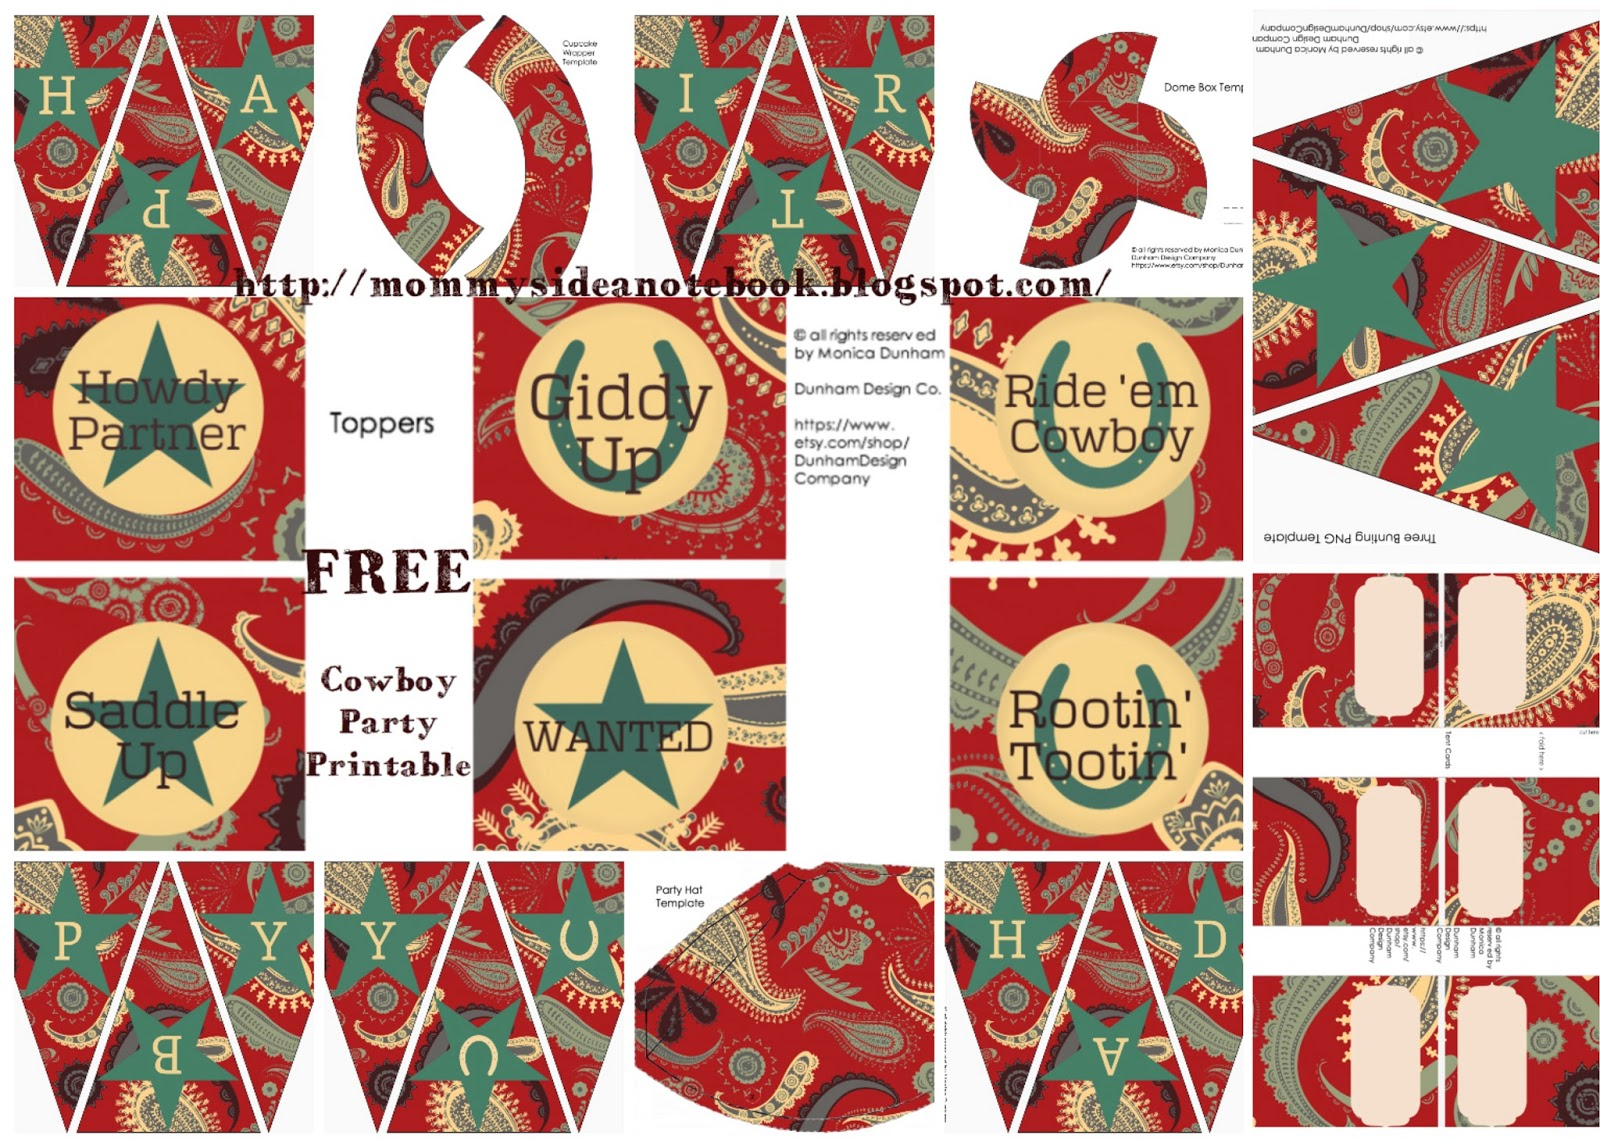 Printable Birthday Decorations Free ~ Dunham design company: free western party printable sets! {cowboy